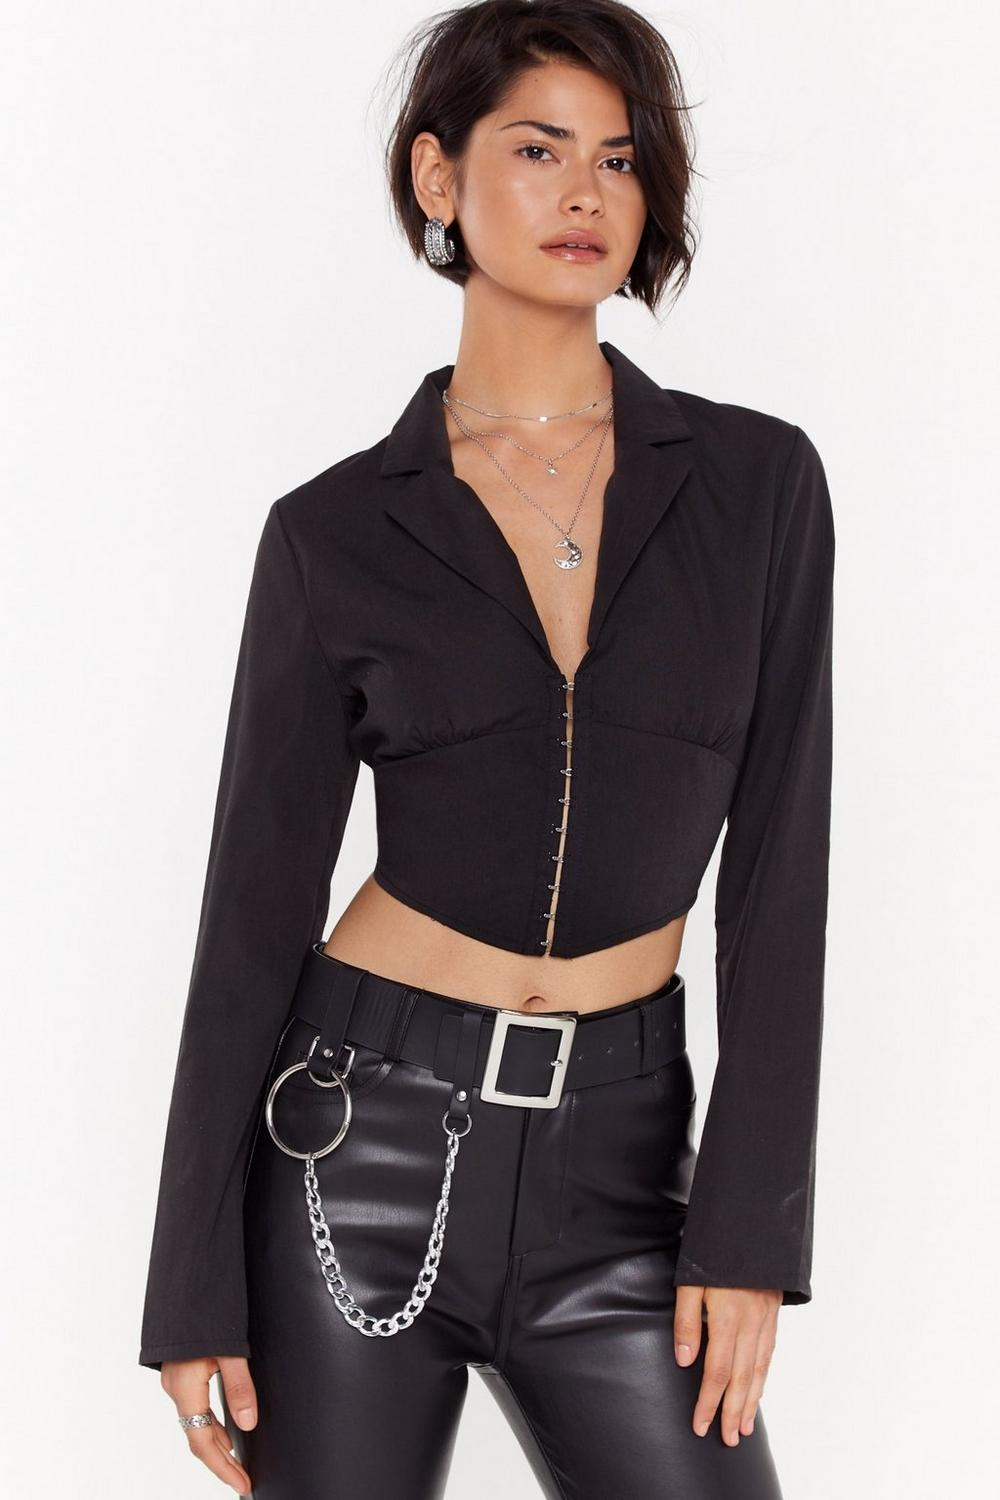 Corset Detail Shirt by Nasty Gal